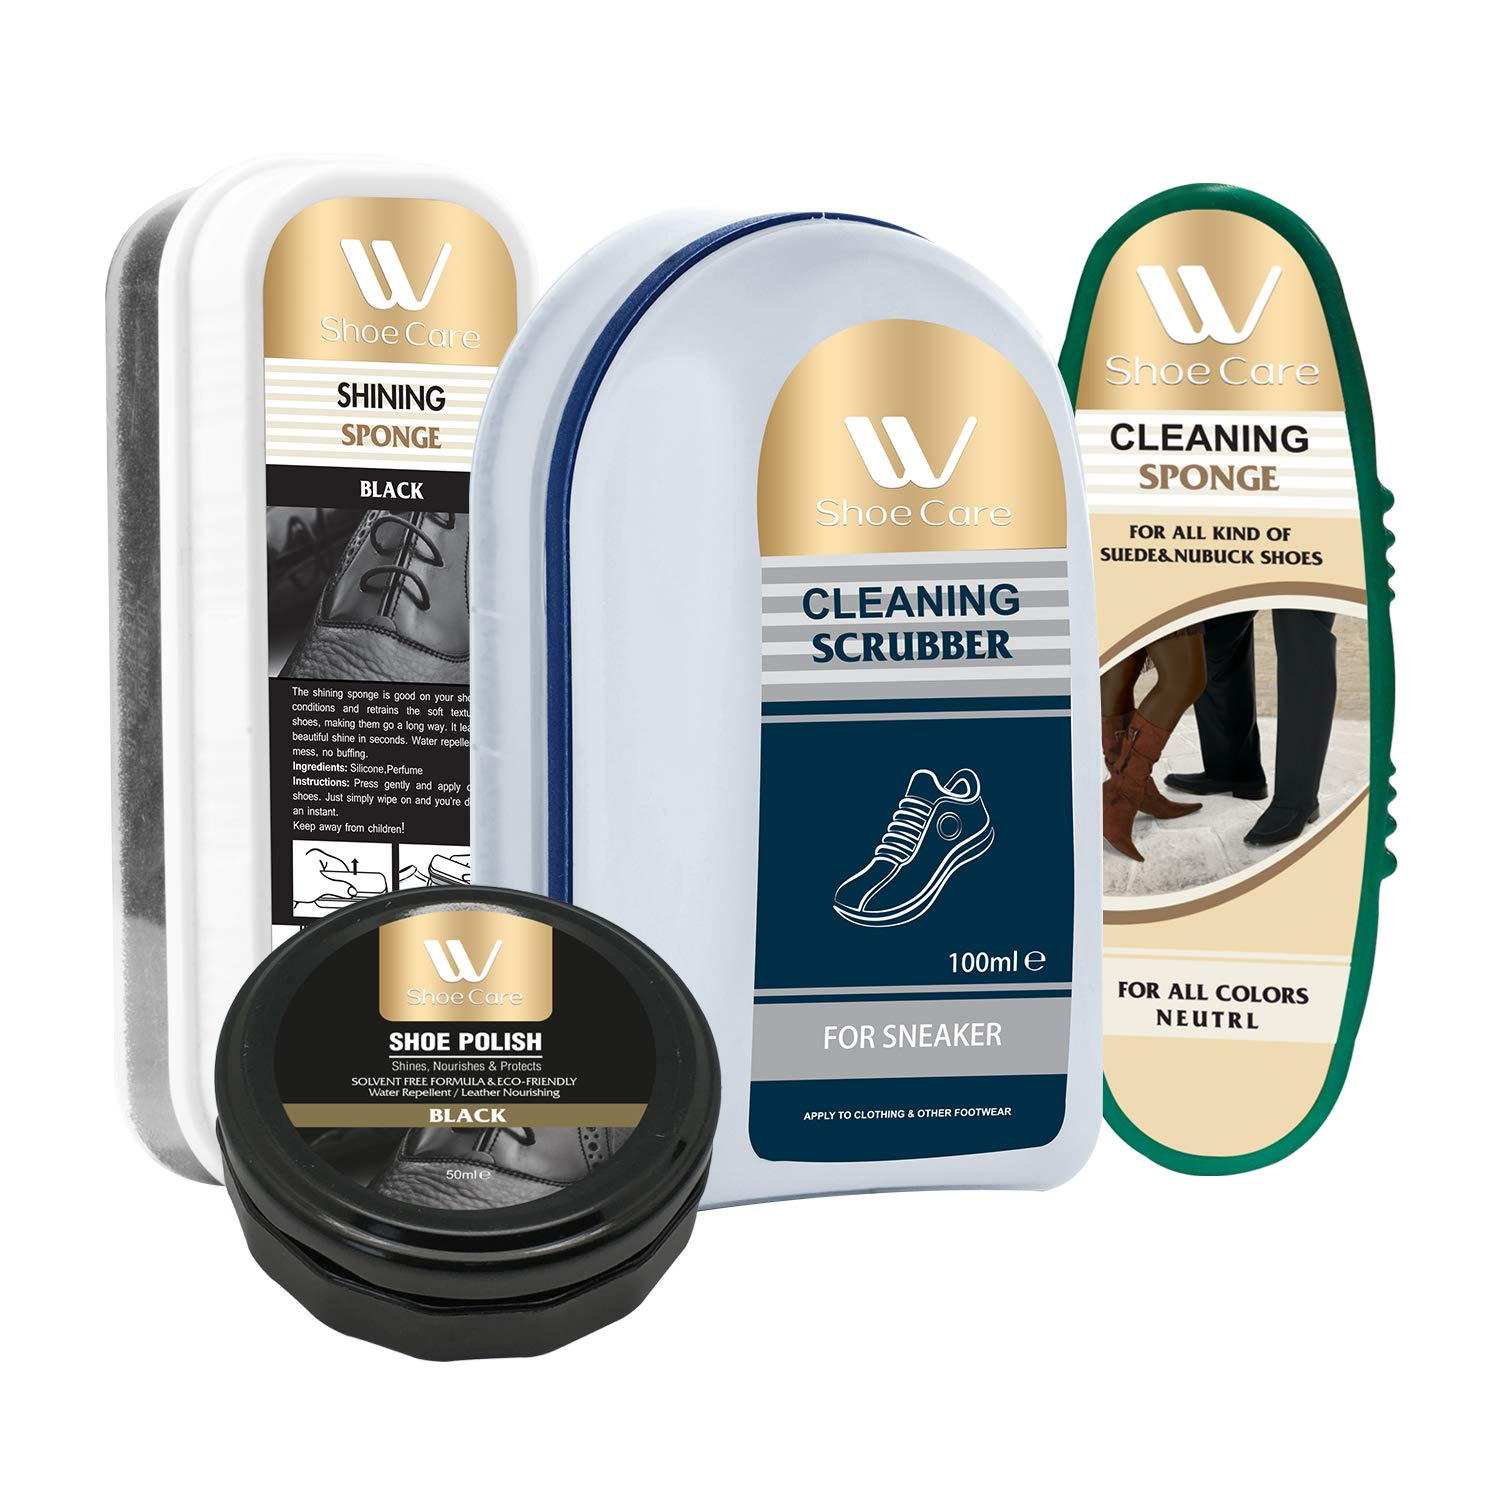 Shoe Care Kit | Cleaning Scrubber and Sponge, Shining Sponge and Shoe Polish